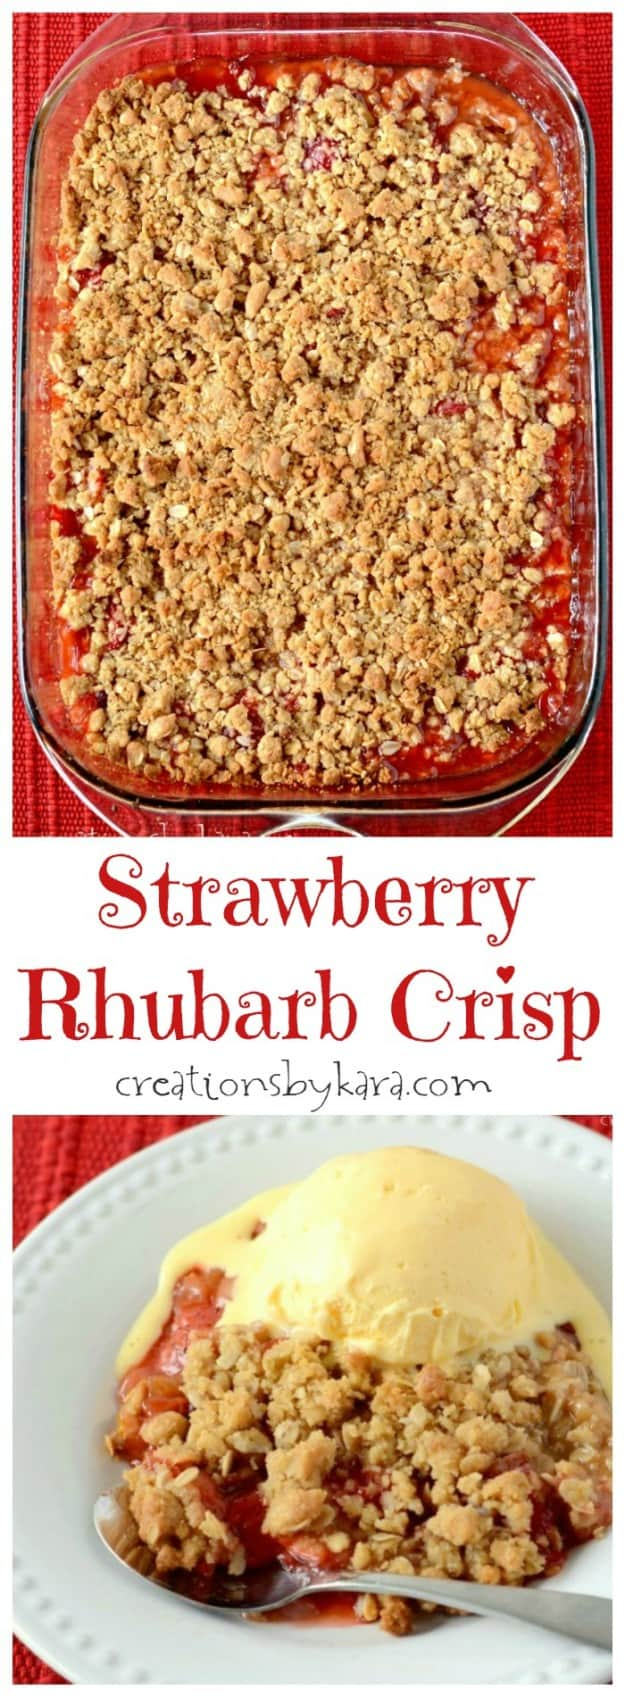 This Strawberry Rhubarb Crisp is a great way to use up that rhubarb from your garden!